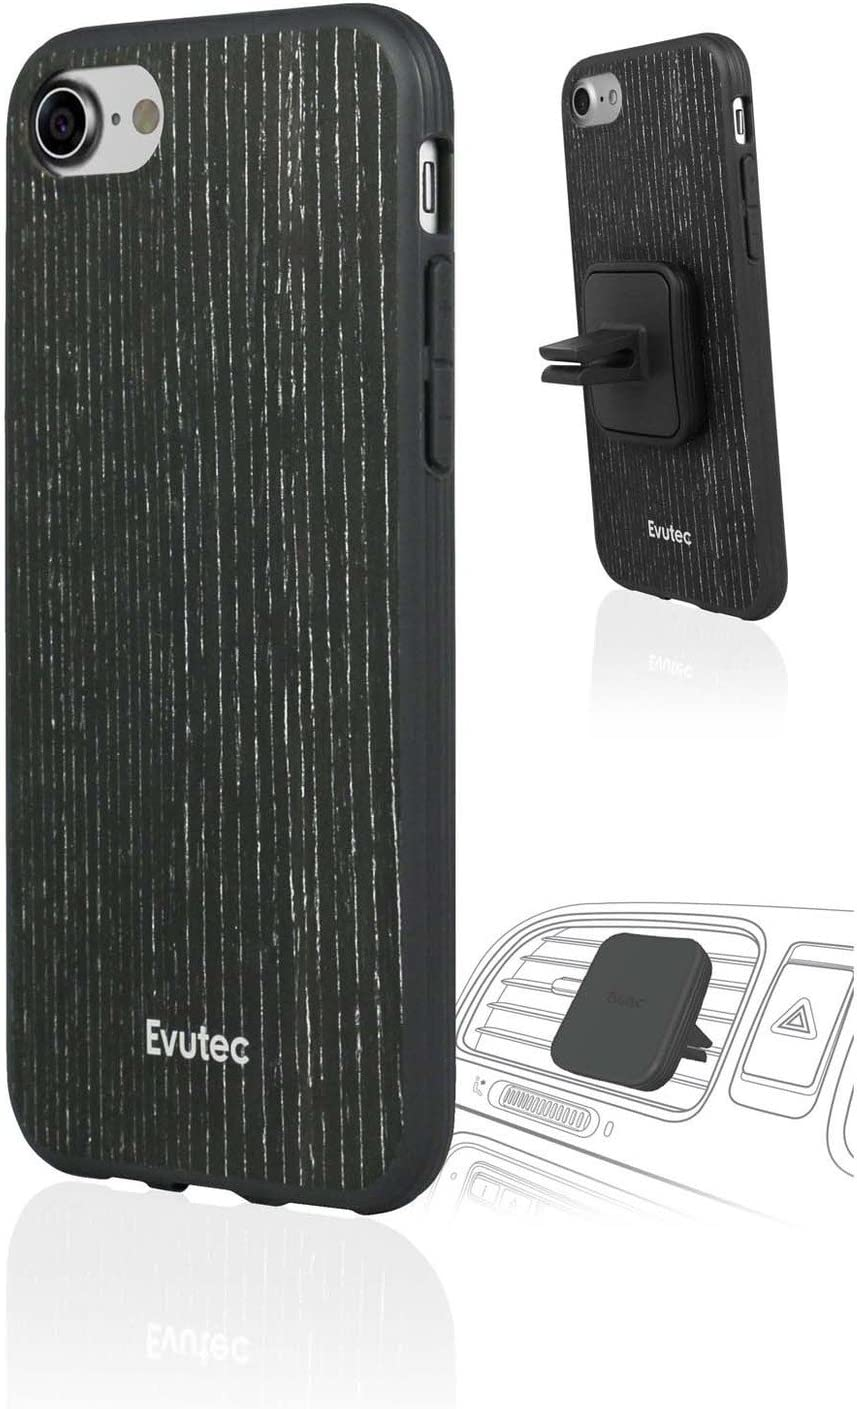 Evutec iPhone 7 It is very popular Plus AER San Jose Mall Wood Phone Case Includ Mount Vent Cell